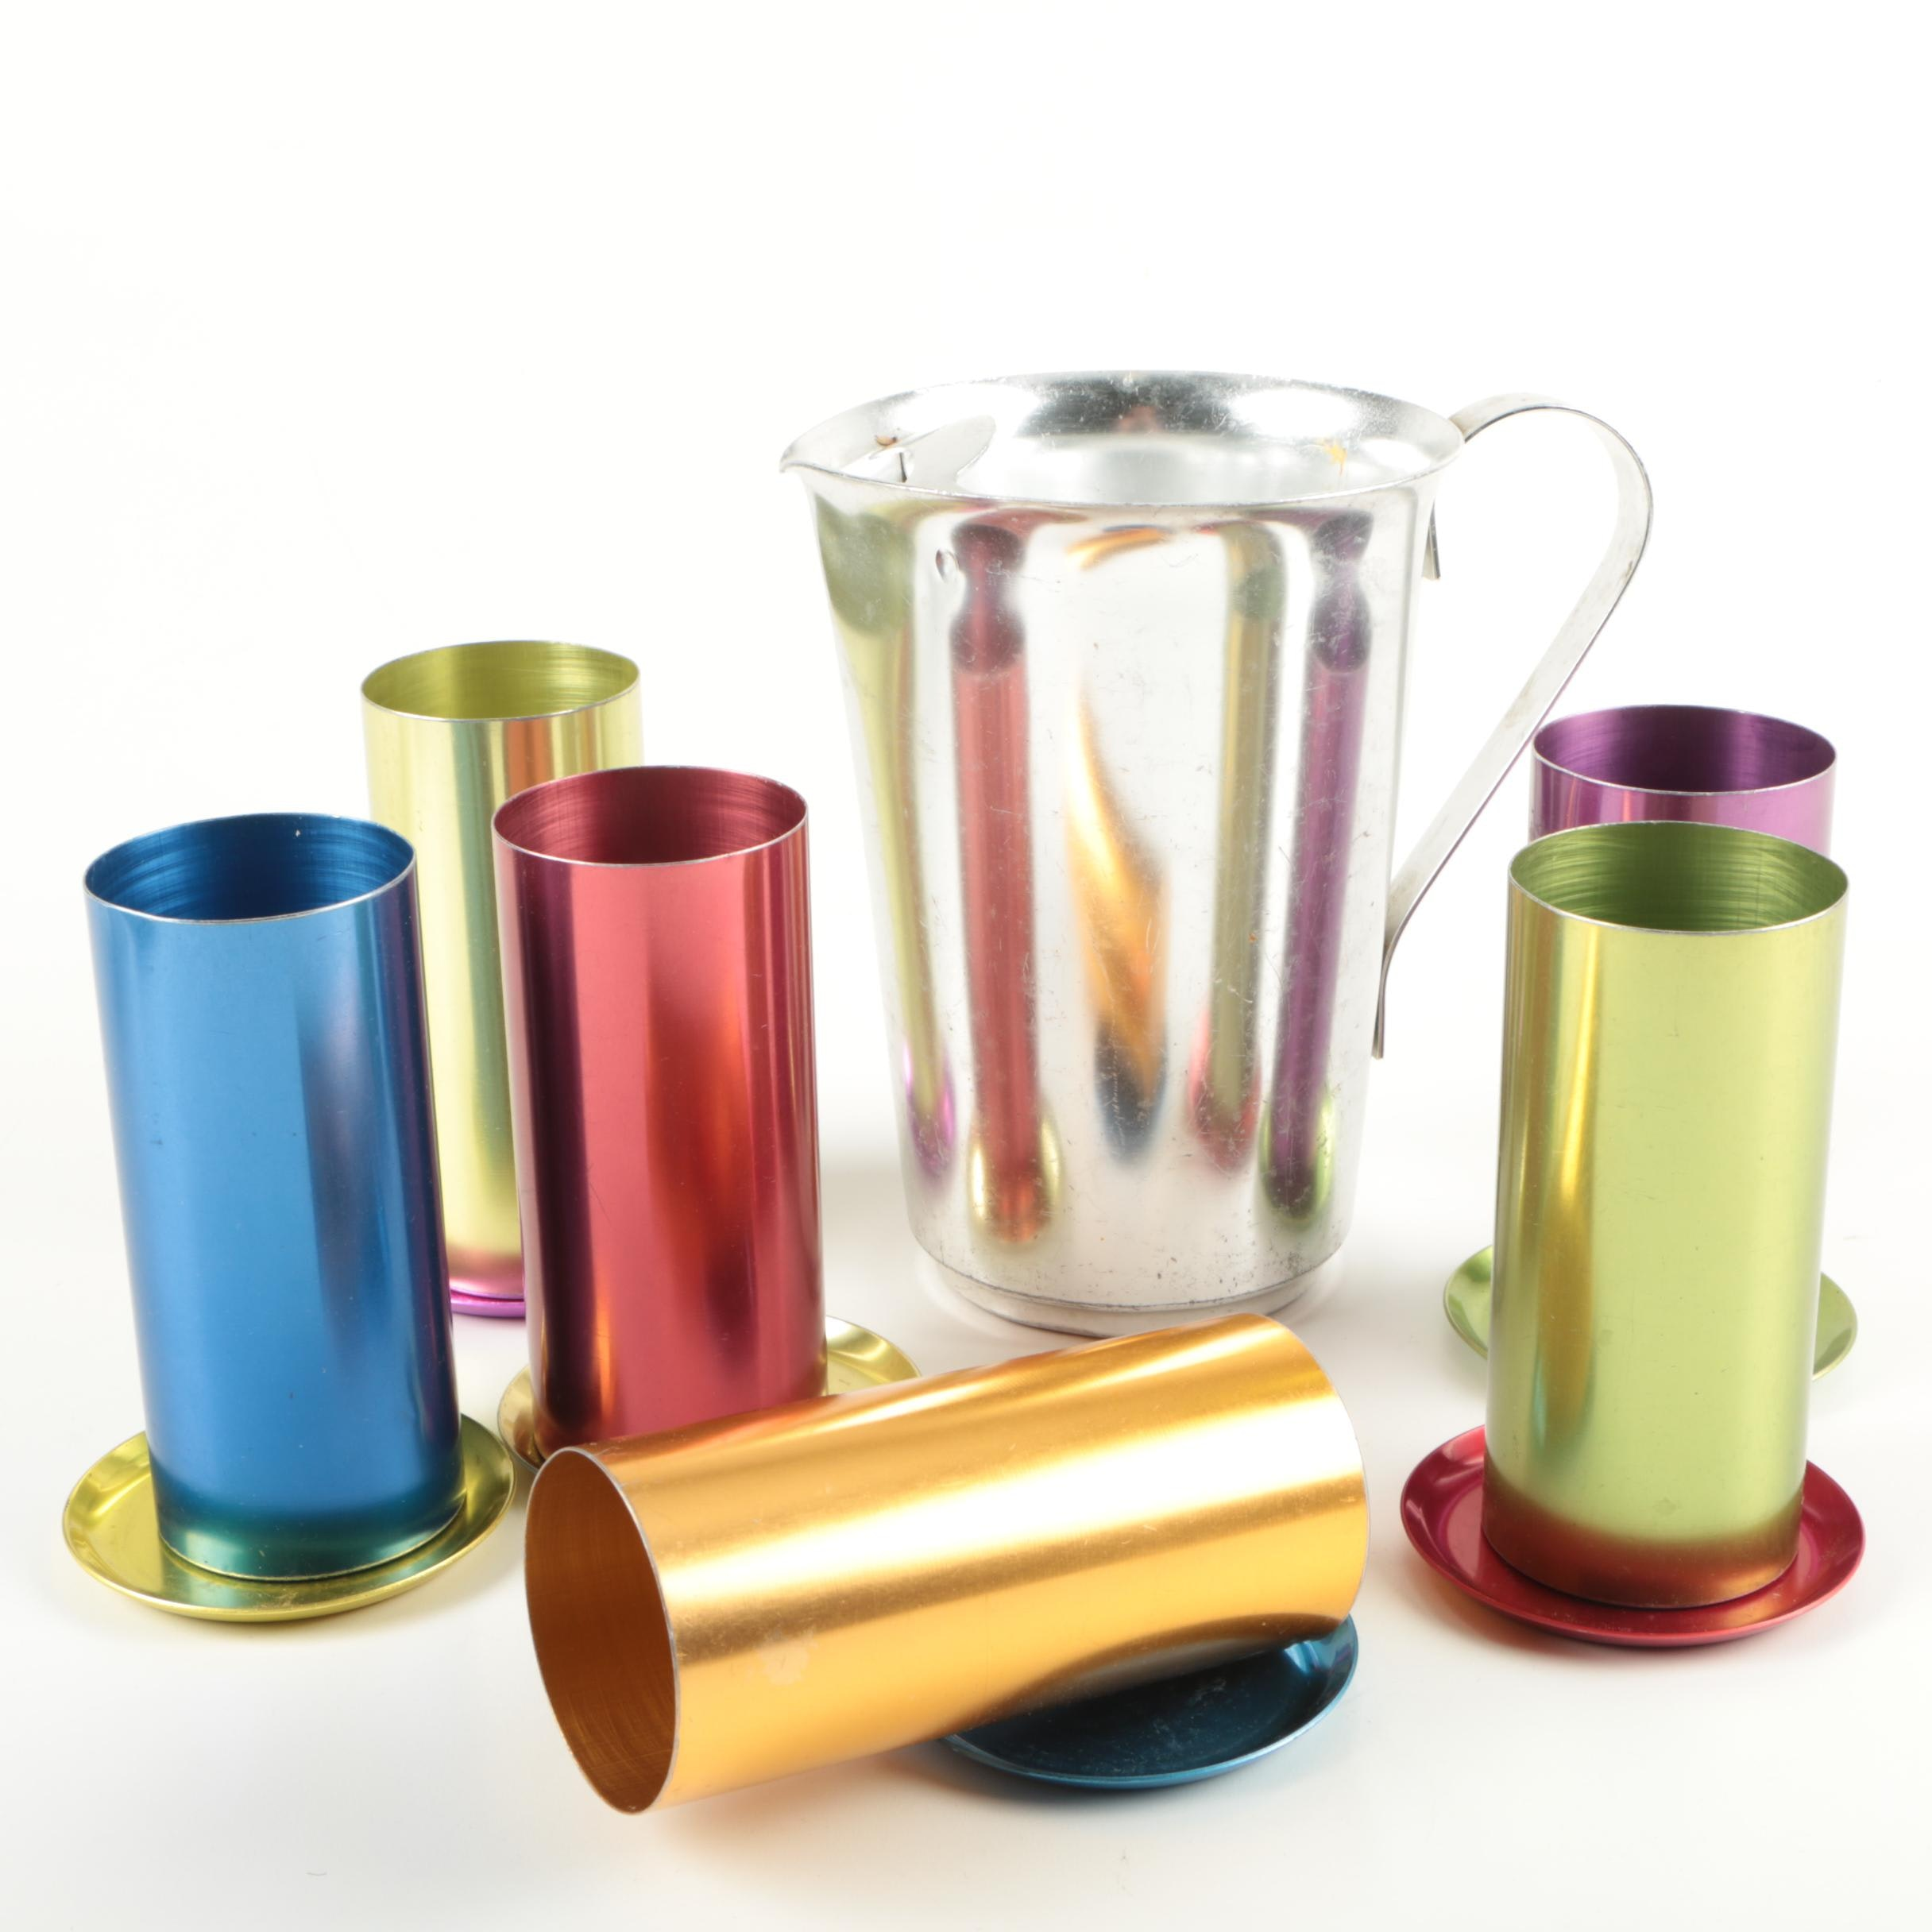 Vintage Perma Hues Colored Aluminum Tumblers and Pitcher